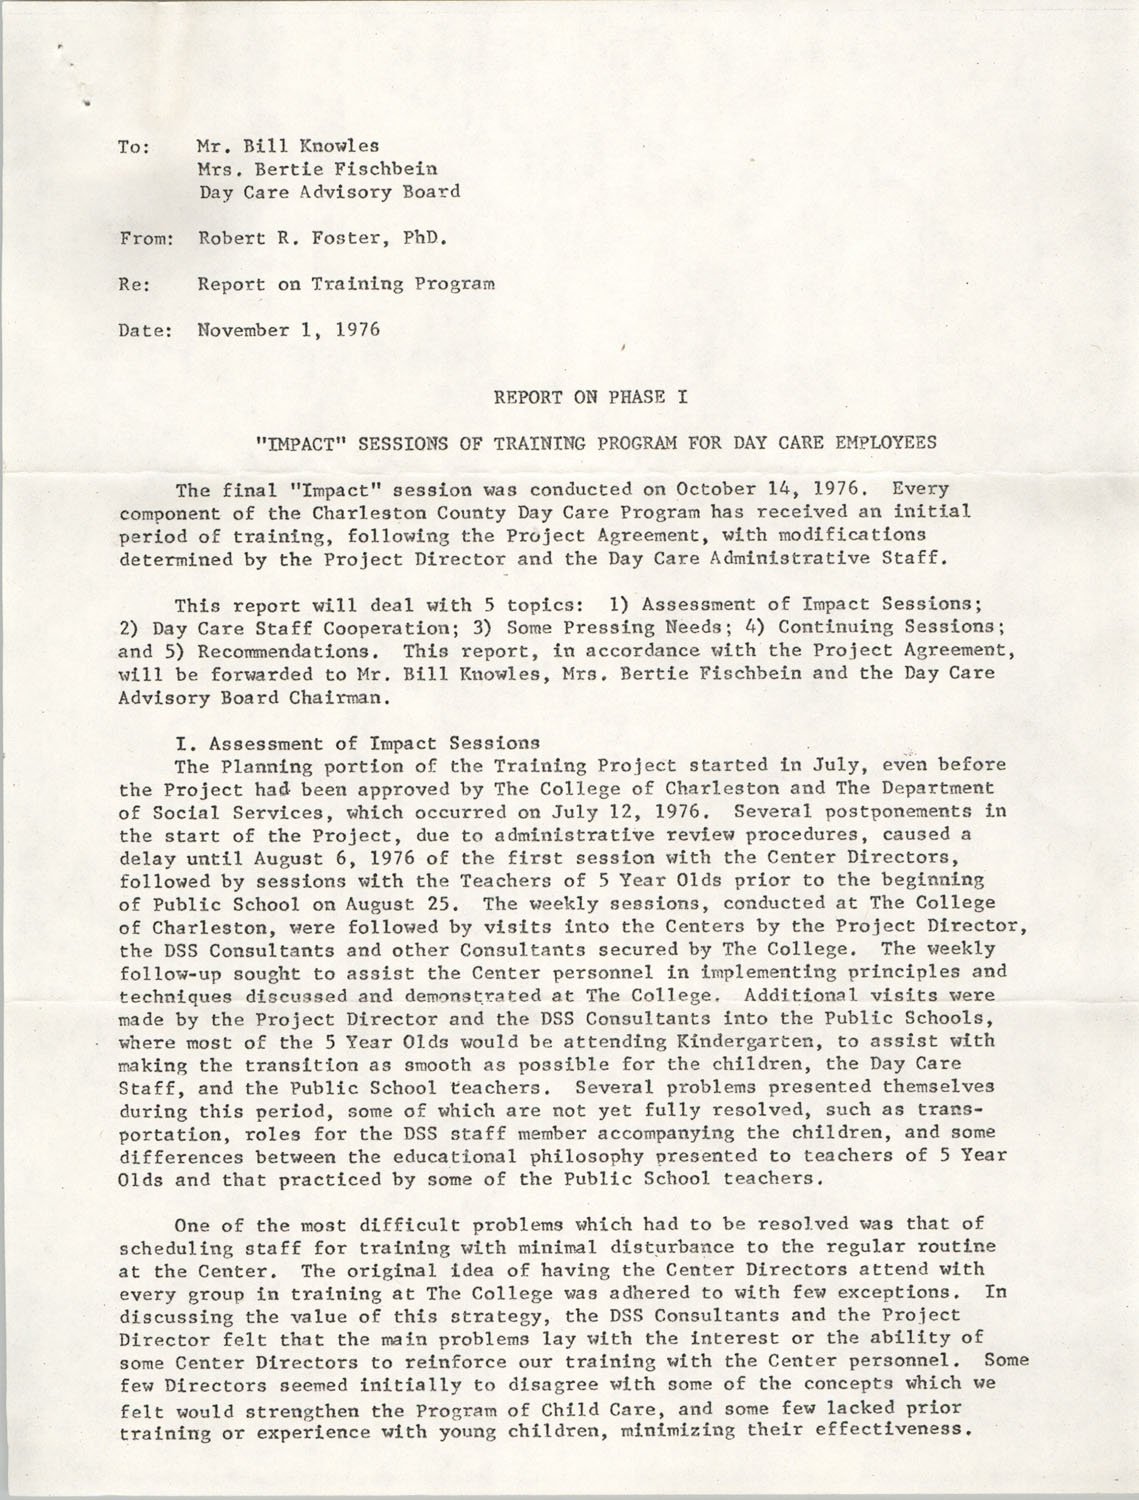 Report from Robert R. Foster to Bill Knowles, Bertie Fischbein, and the Day Care Advisory Board, November 1, 1976